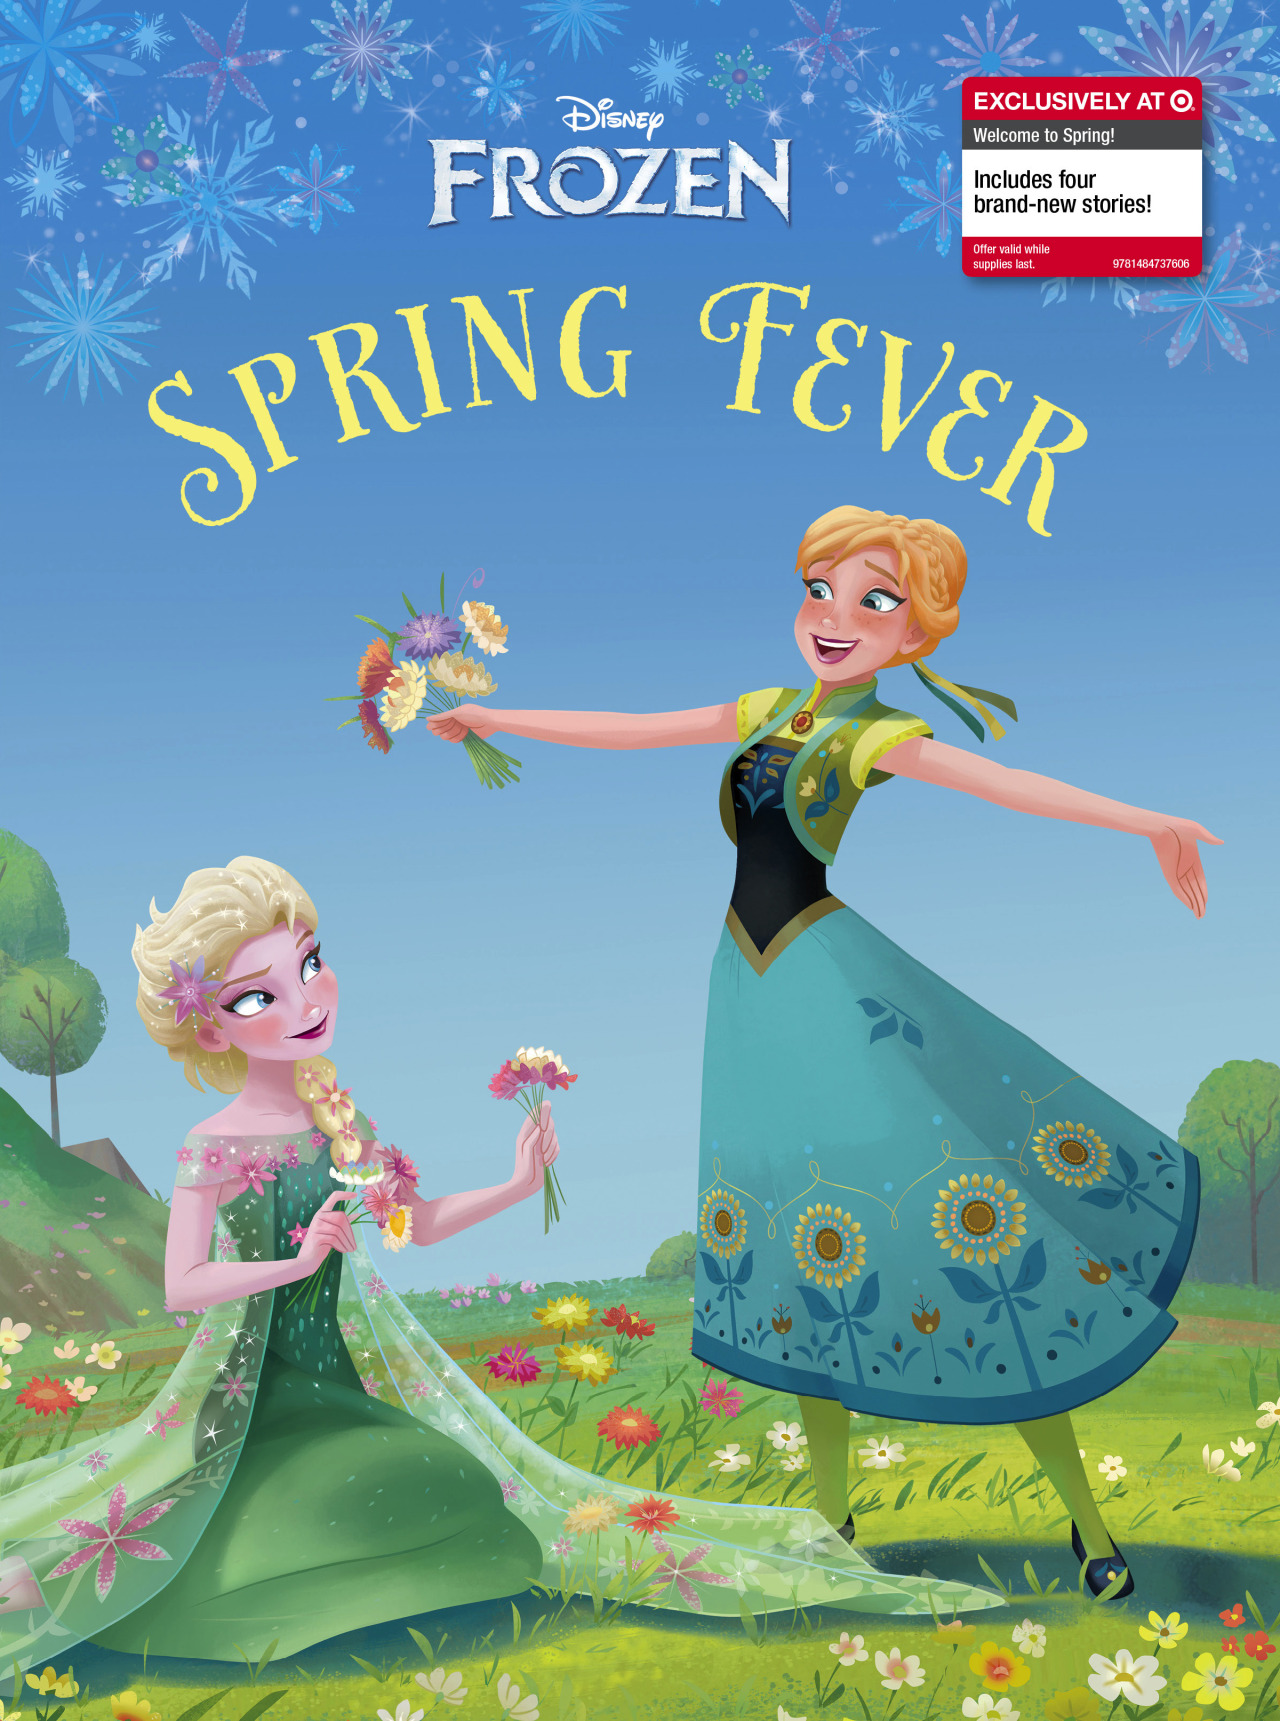 Frozen Spring Coloring Pages : Frozen spring fever storybook photo